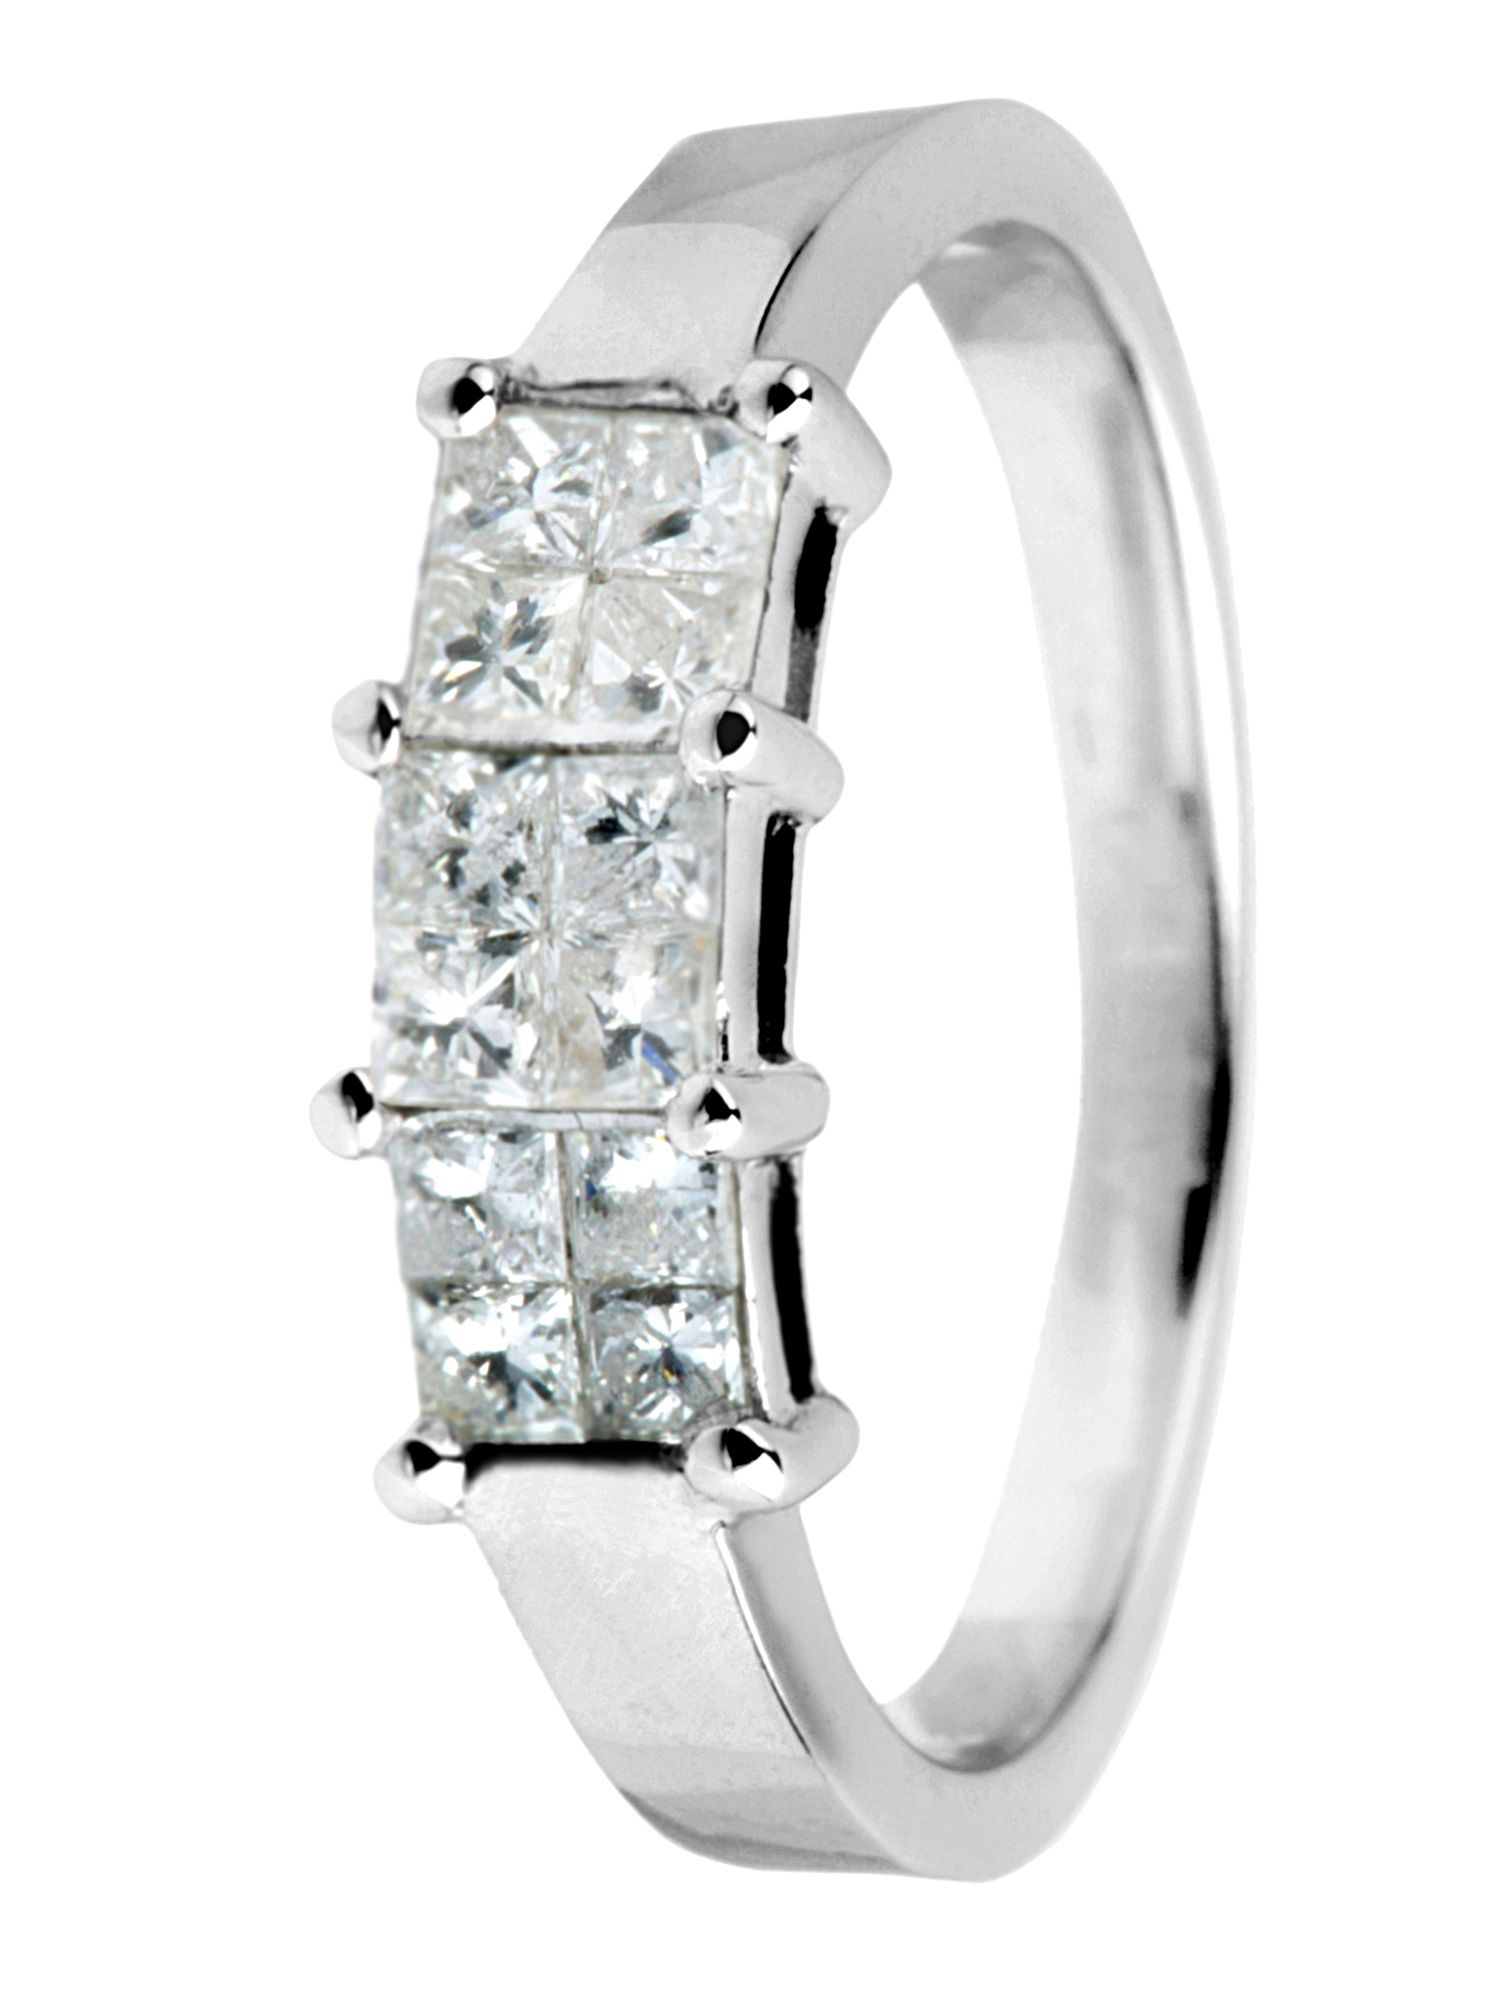 Goldsmiths 18ct gold 0.50ct princess cut diamond ring